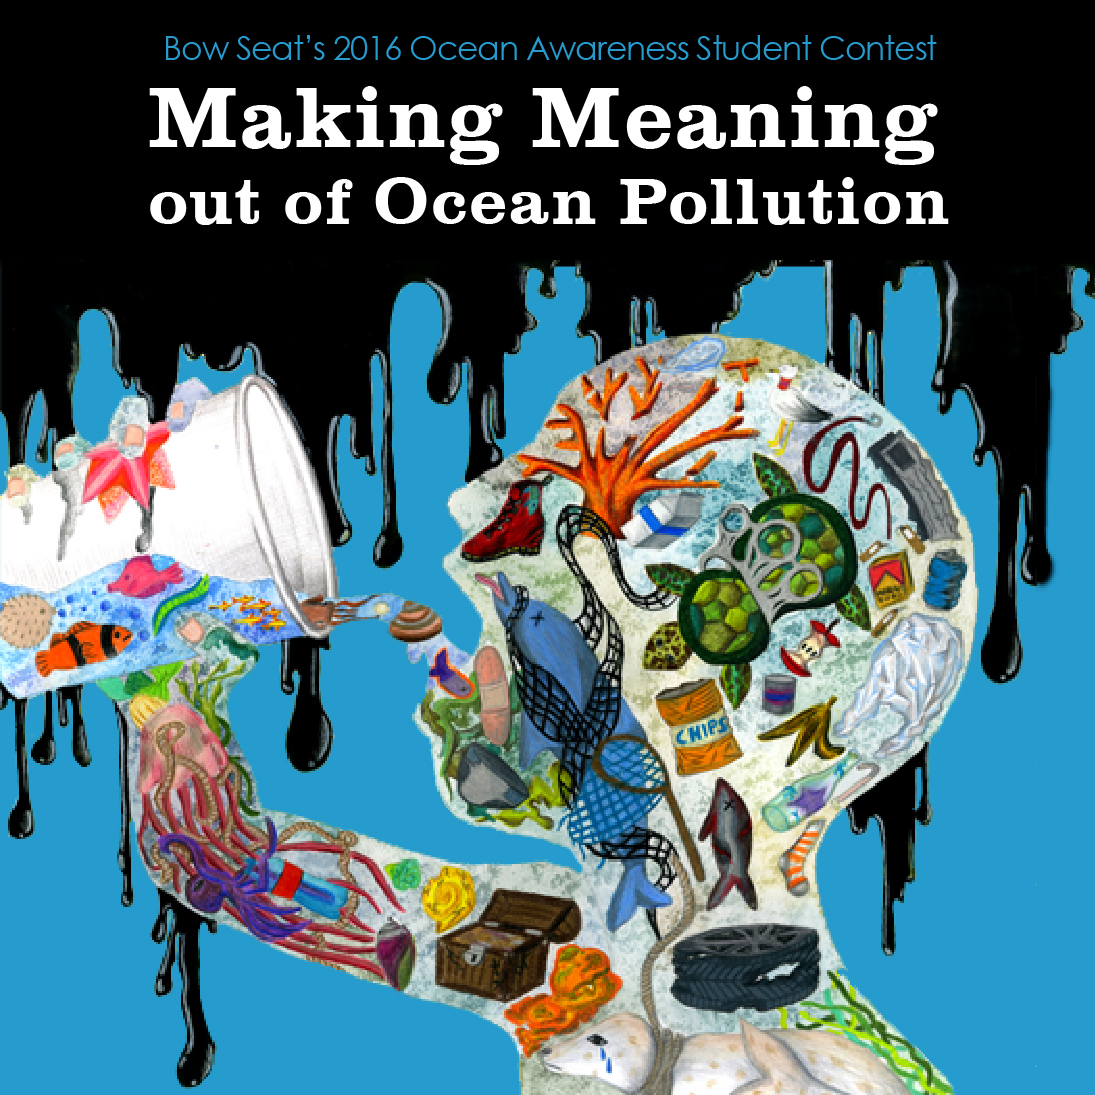 significance of oceans essay Oceans are the largest water bodies on the planet earth over the last few decades, surplus human activities have severely affected the marine life on the earth's oceans ocean pollution, also known as marine pollution, is the spreading of harmful substances such as oil, plastic, industrial and.